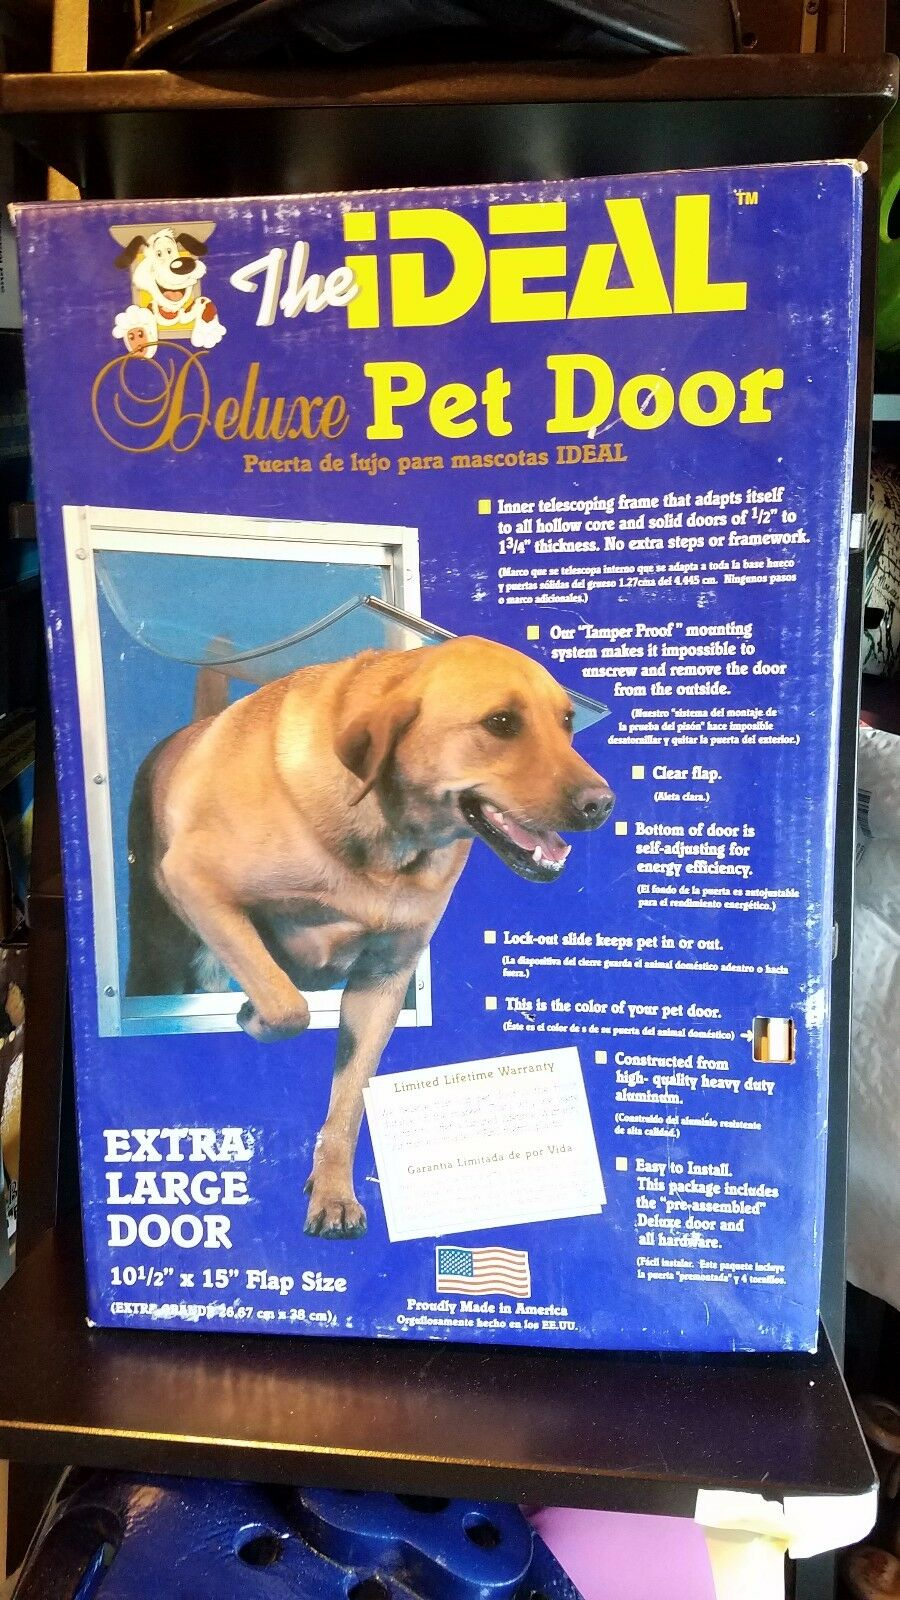 The Ideal Ideal Ideal Deluxe Pet Door Extra Large Door 10.5 in. x 15 in. High Quality 9e0db3